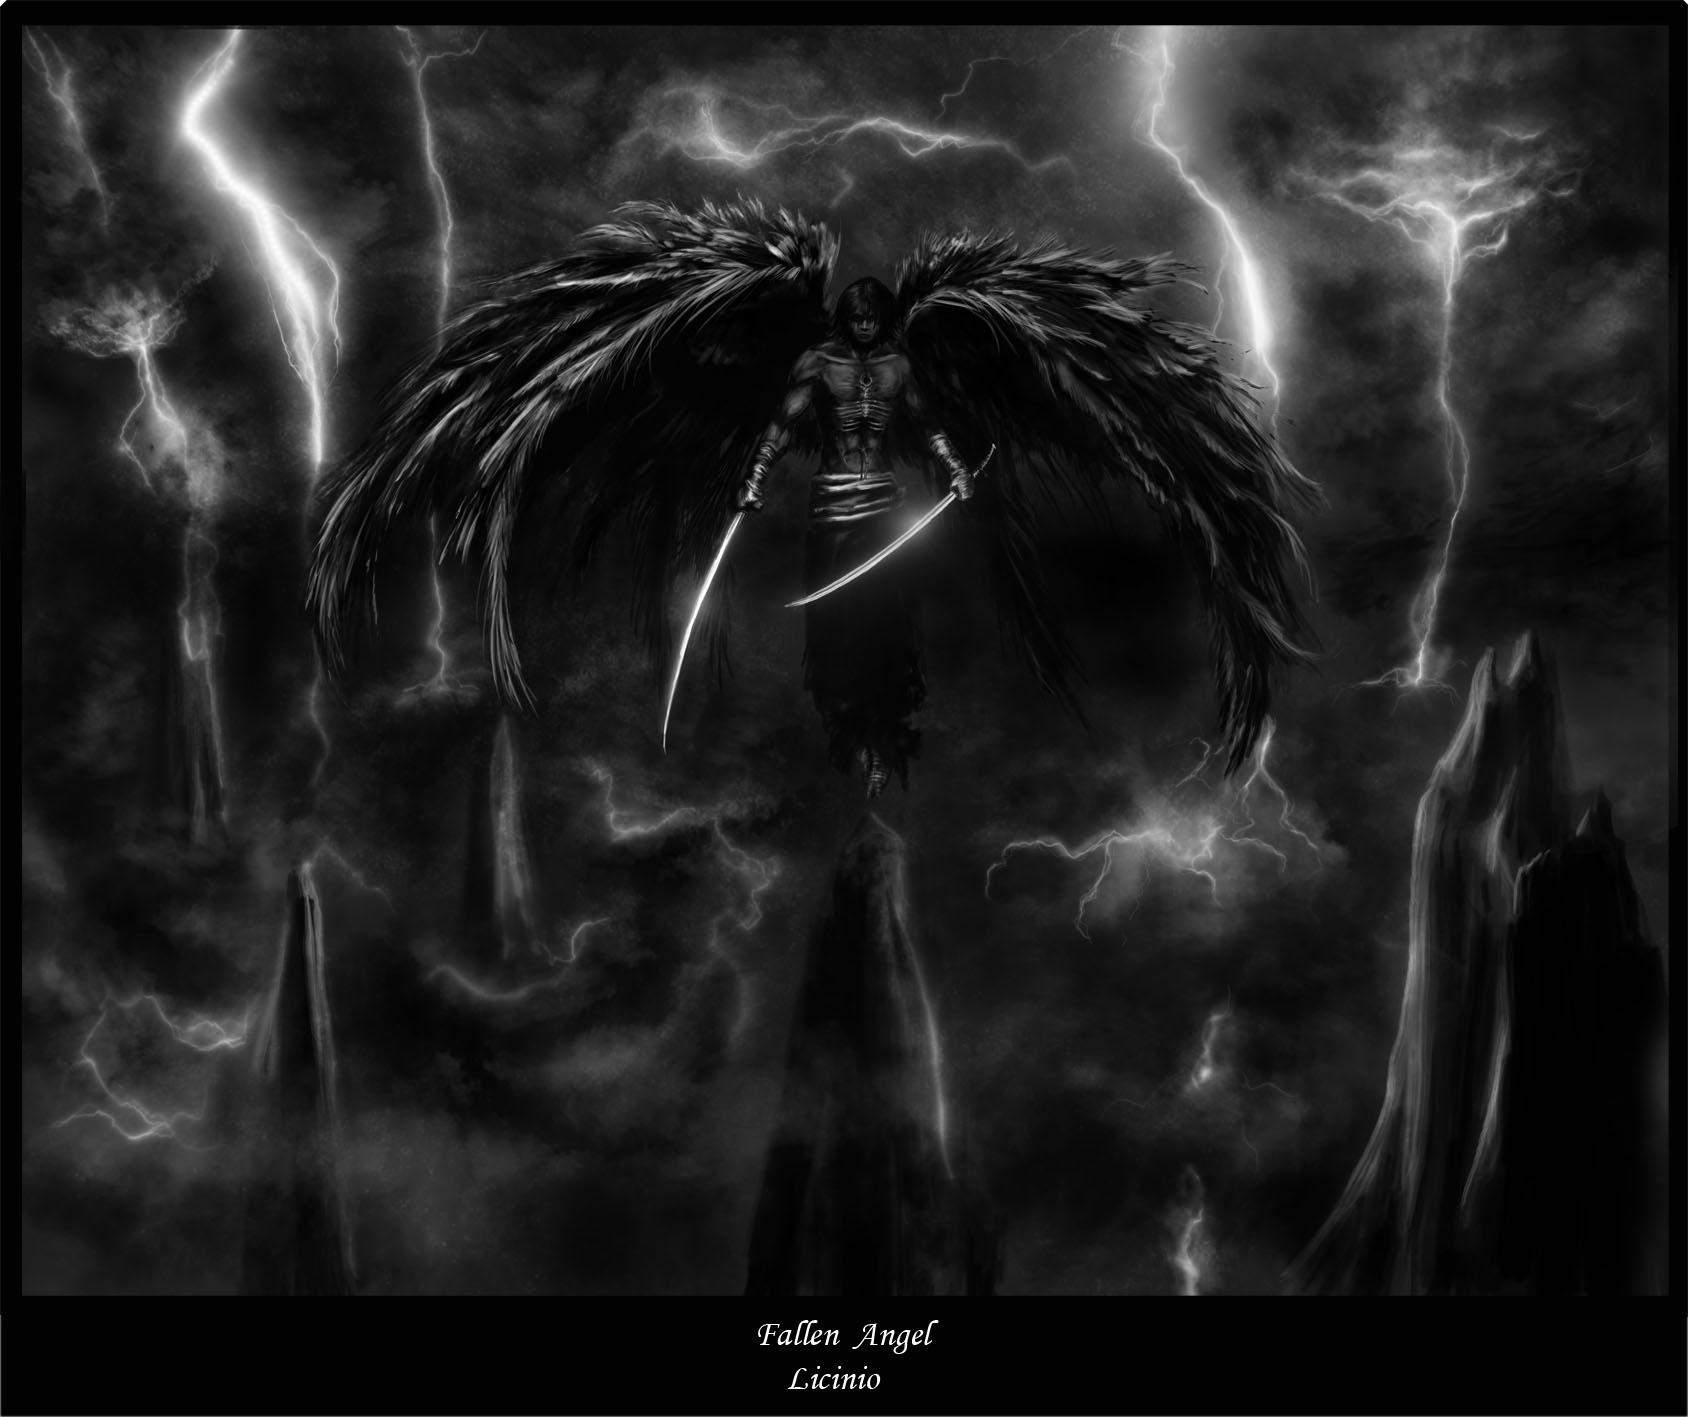 Download Fallen Angel 5 Wallpapers Pictures Photos and Backgrounds 1688x1417